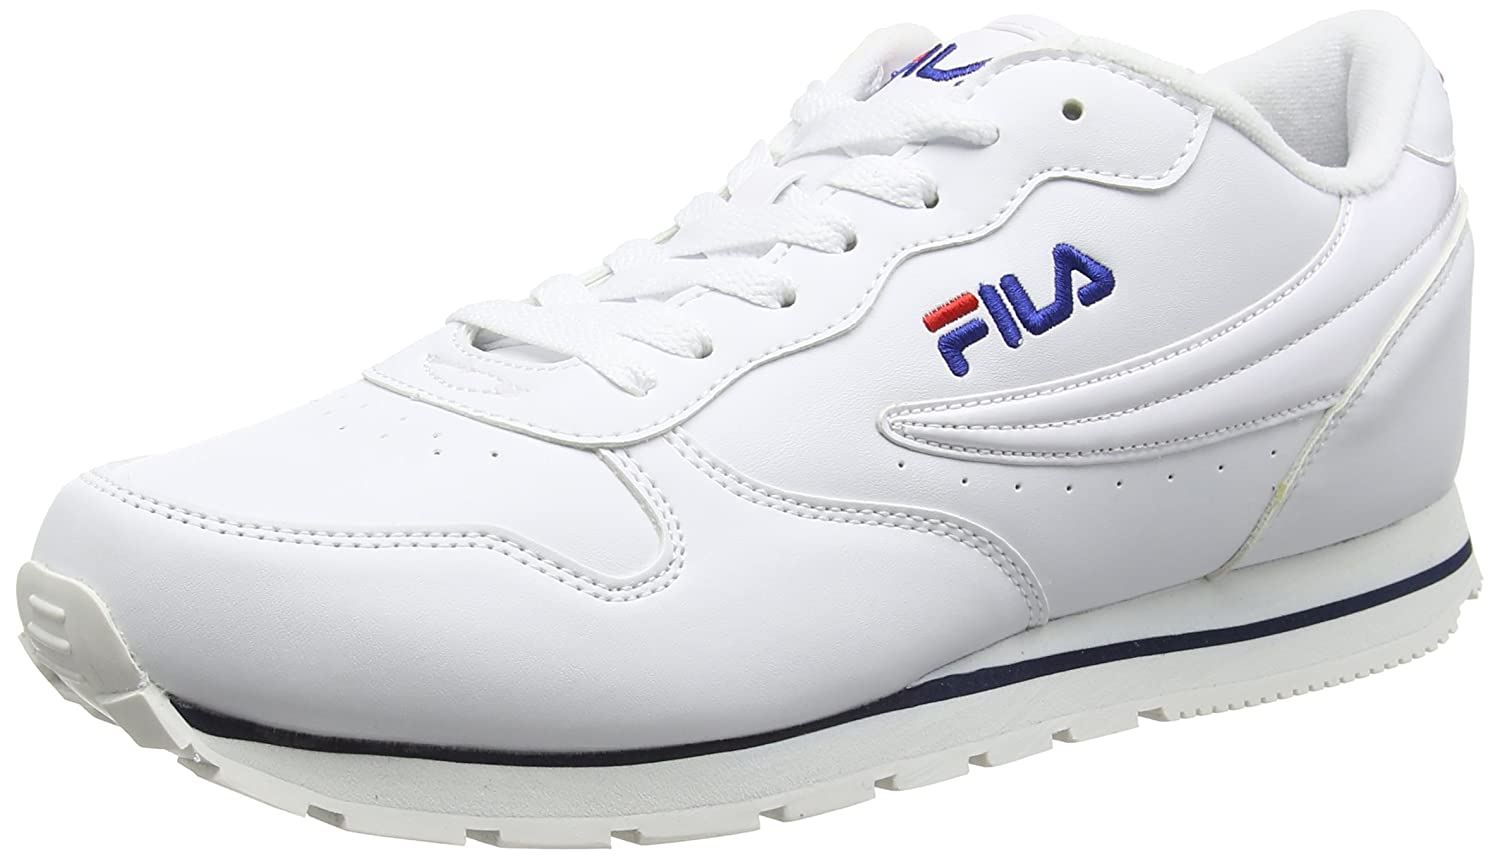 b89c4dab874 60%OFF Fila Orbit